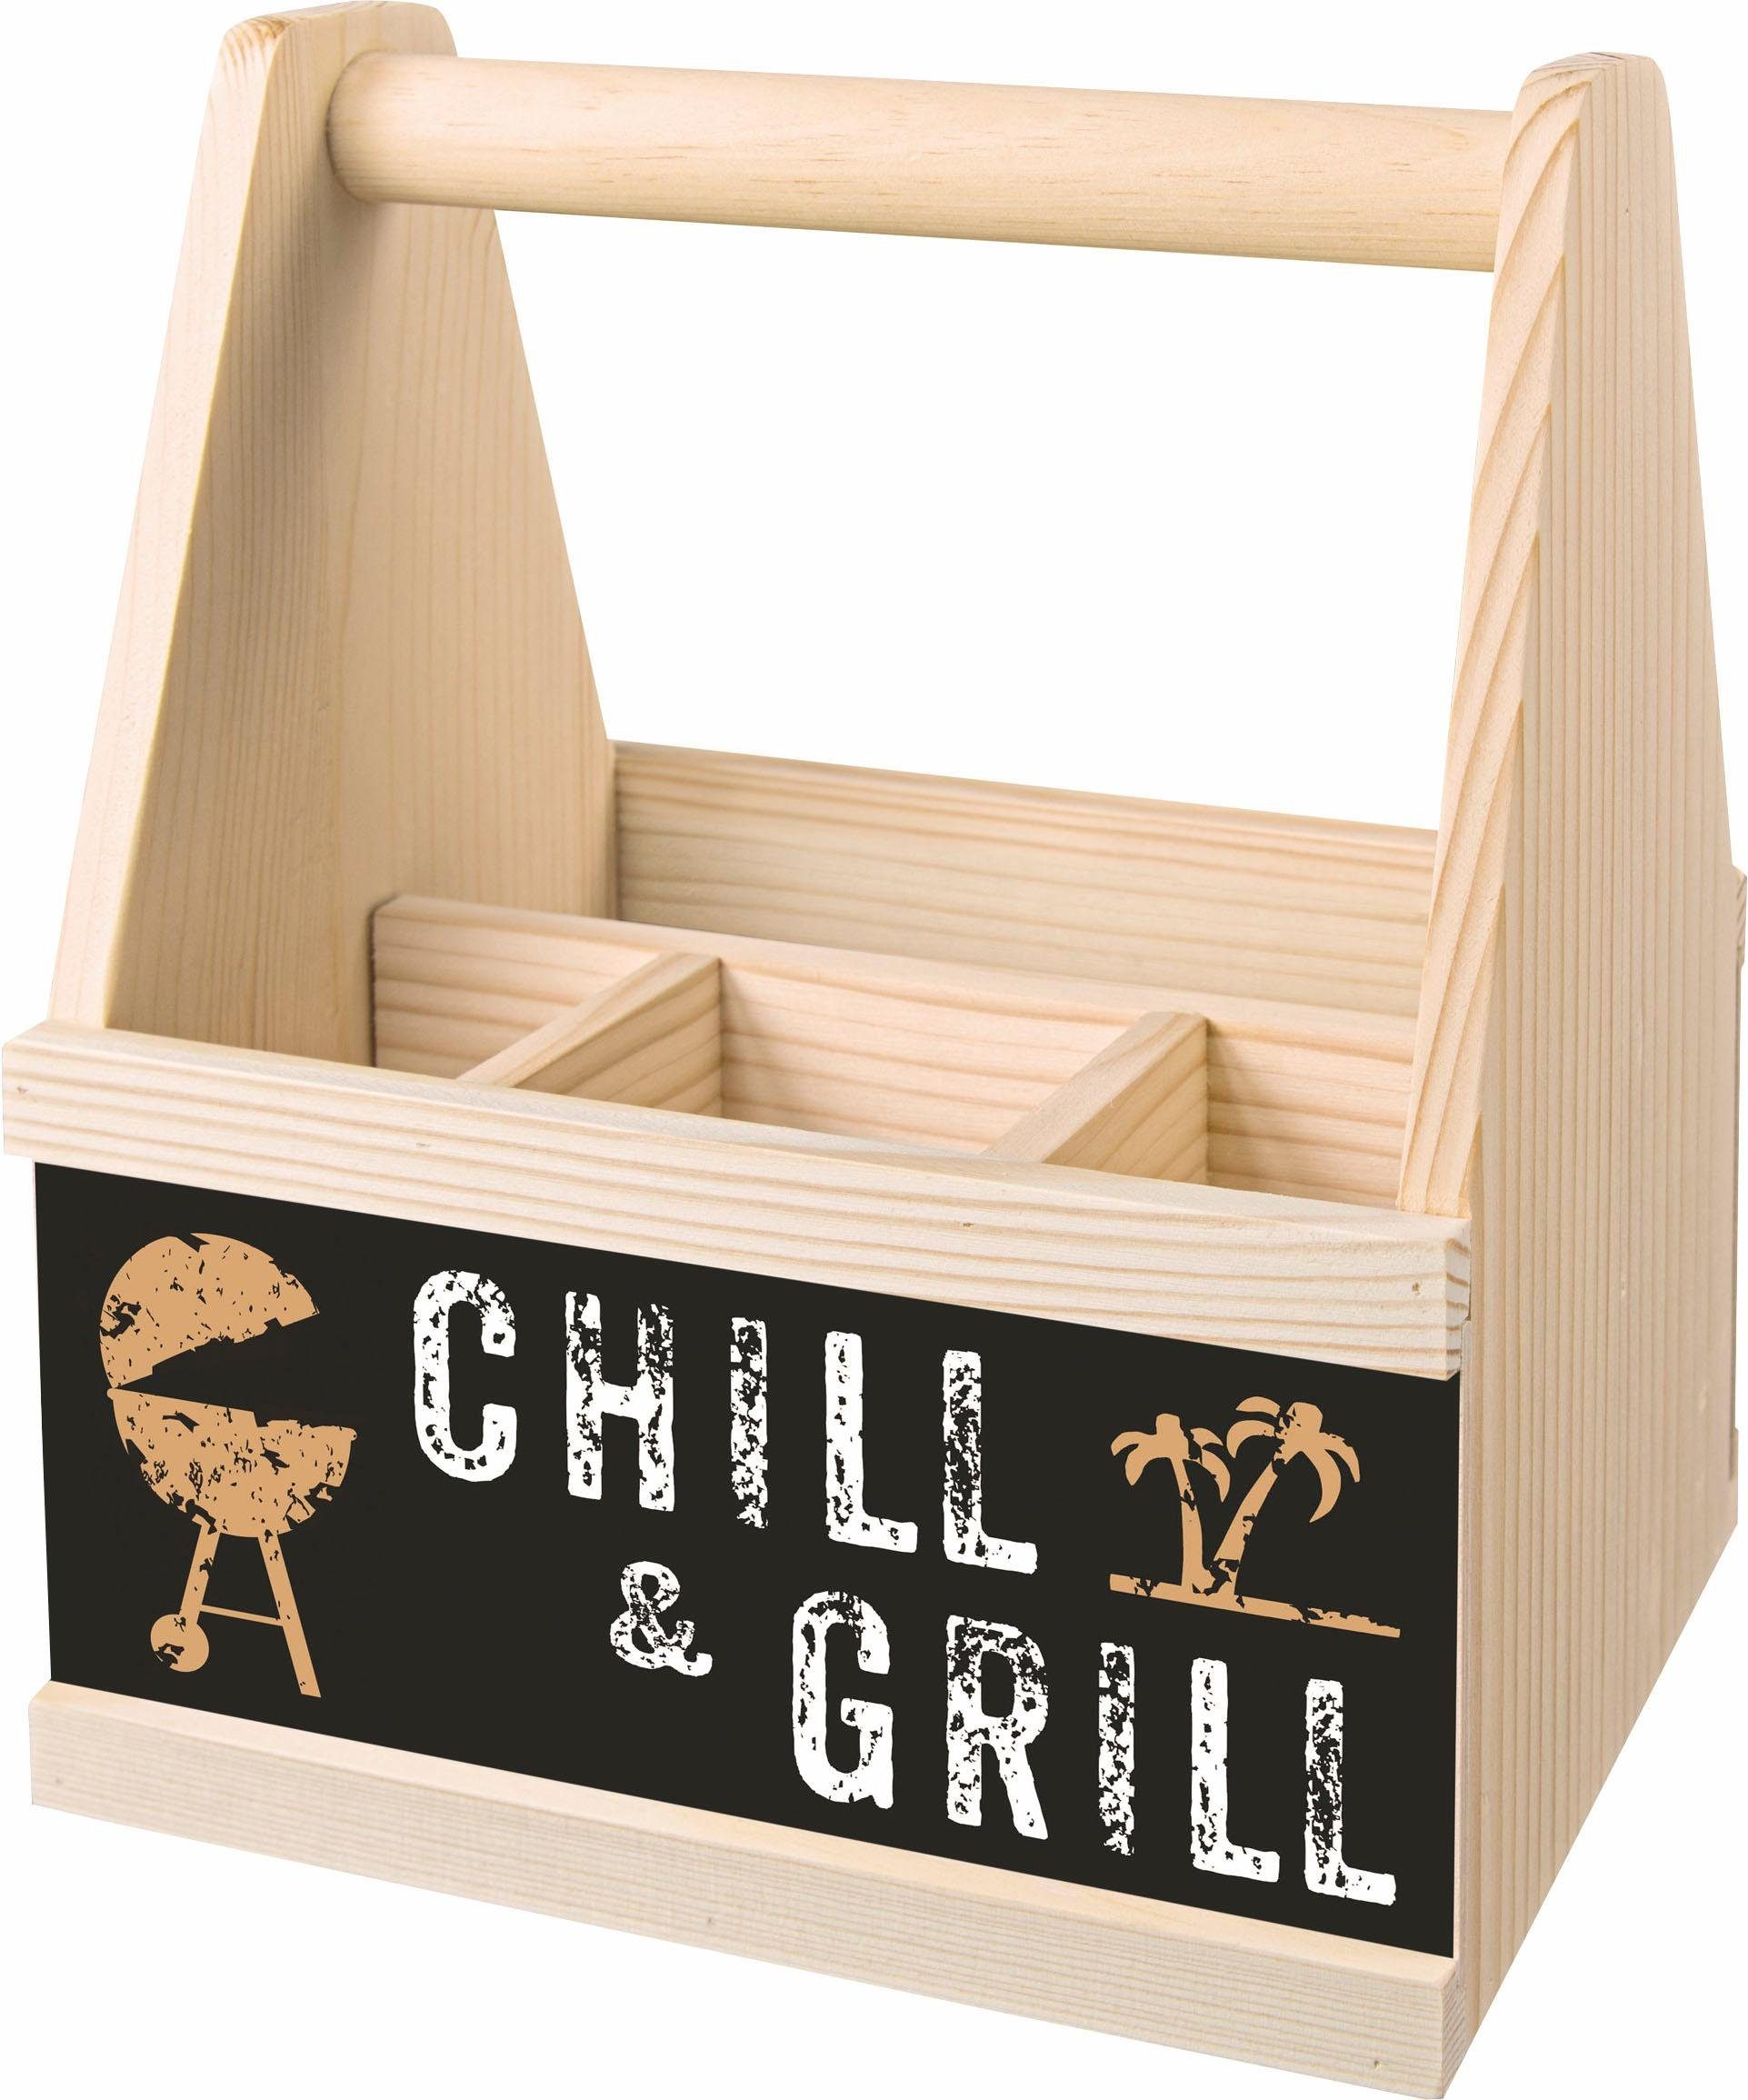 Contento Besteck Caddy »Chill & Grill«